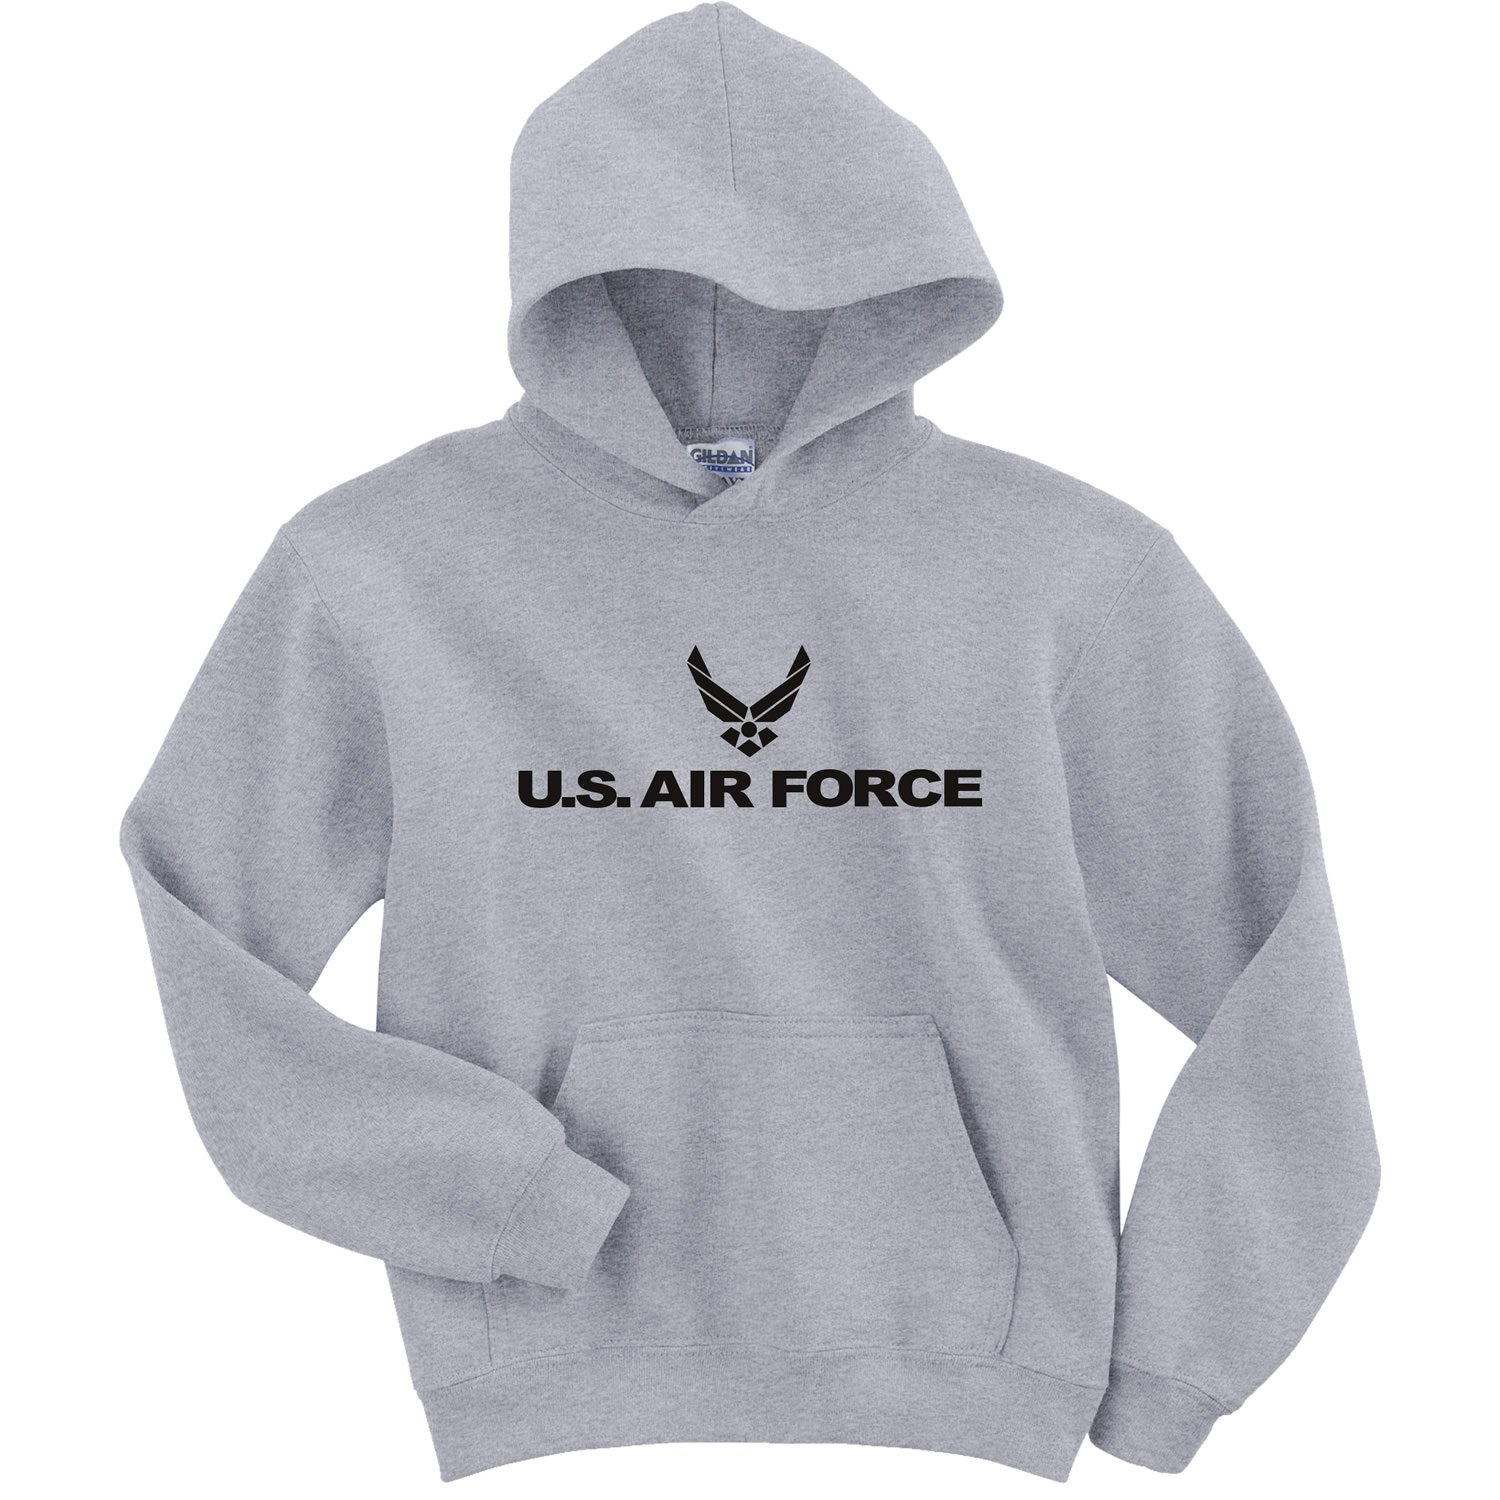 Youth Air Force Hooded Sweatshirt in Gray